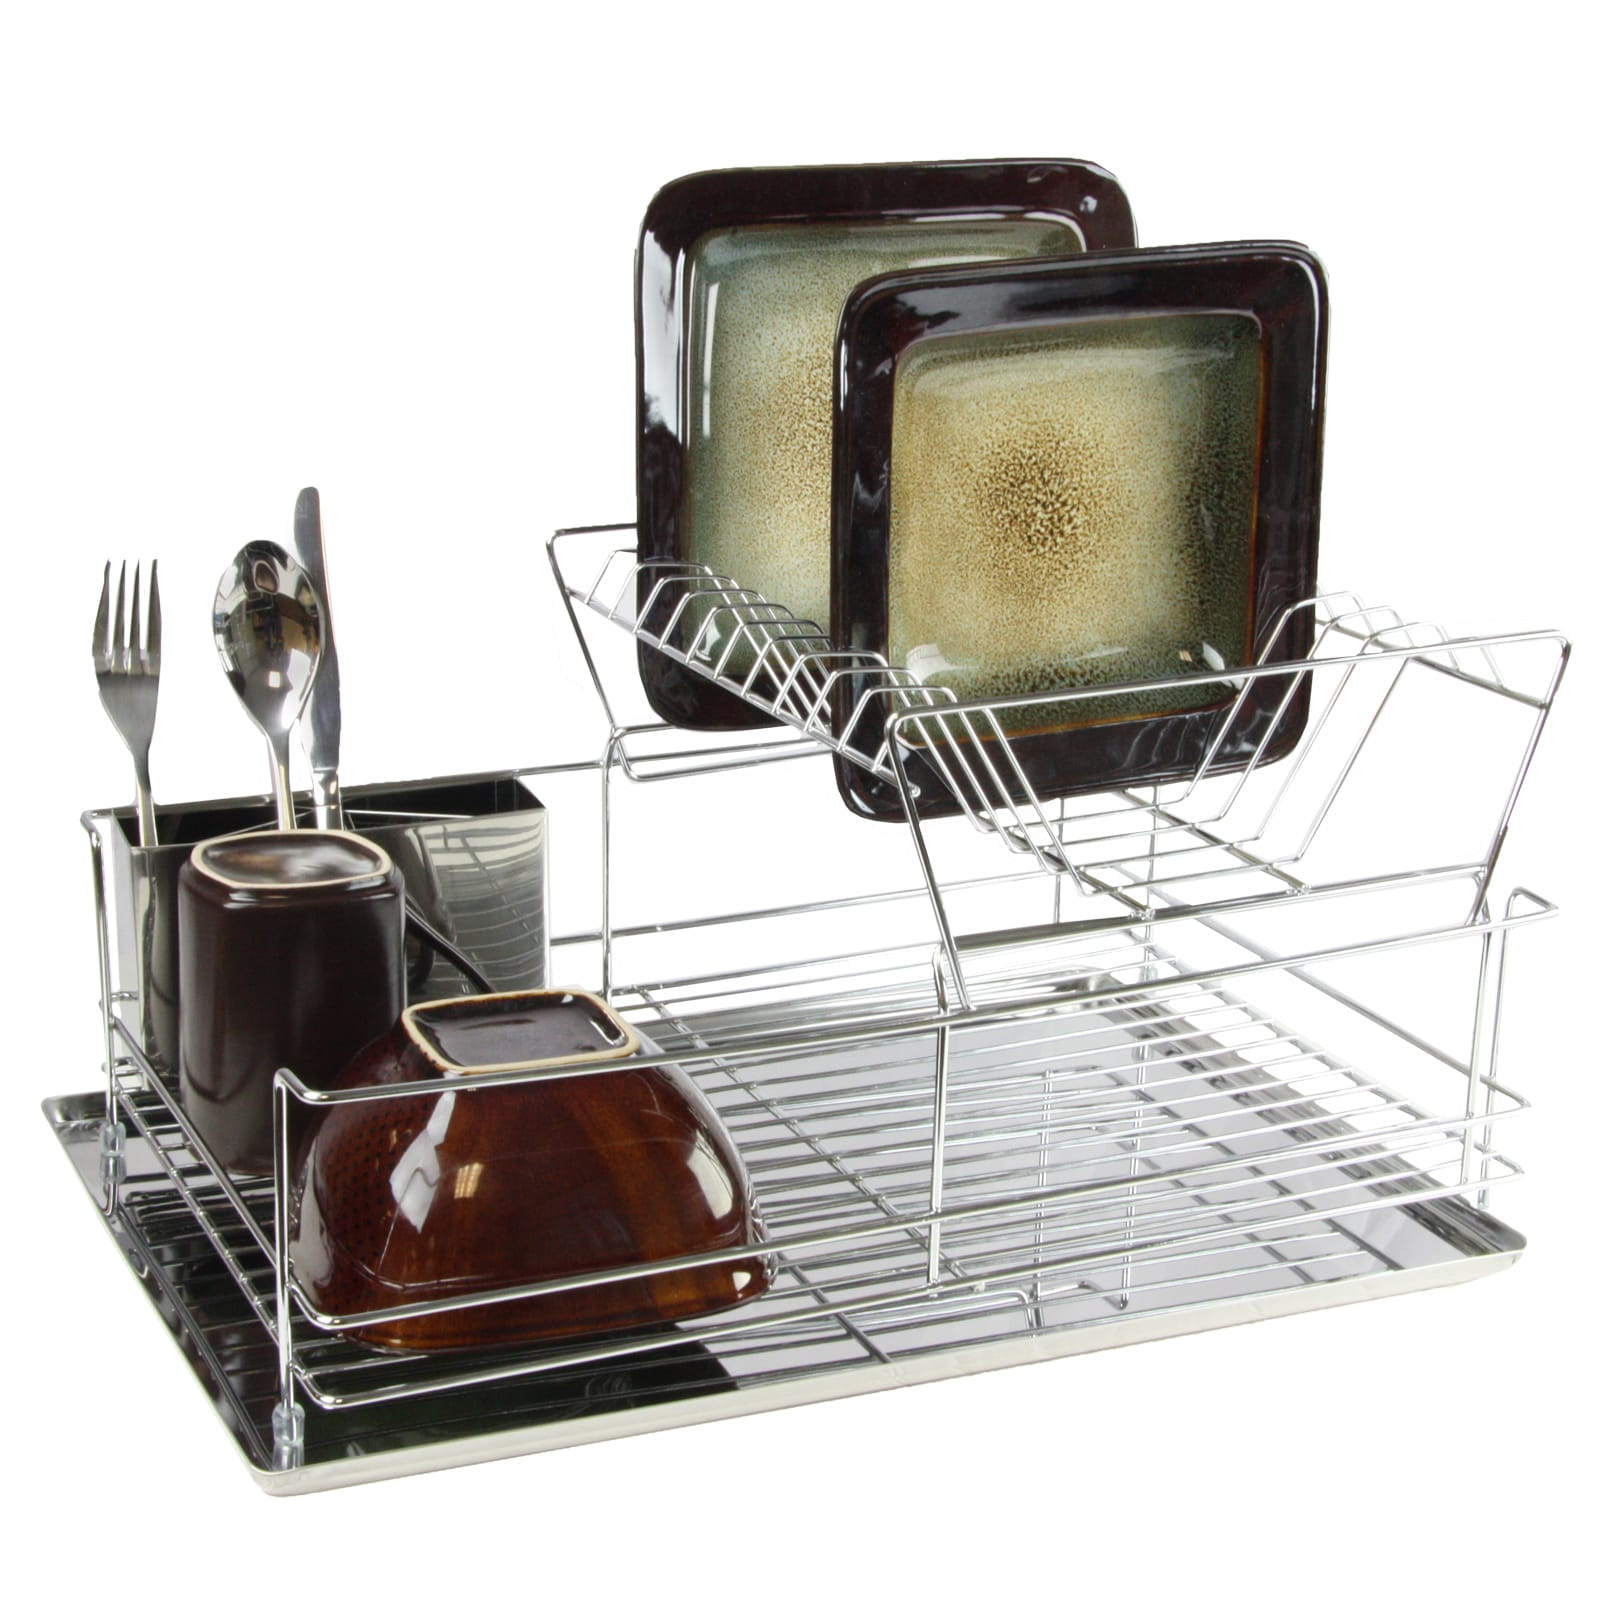 Mega Chef 15.5 Inch Stainless Iron Shelf Dish Rack by Supplier Generic